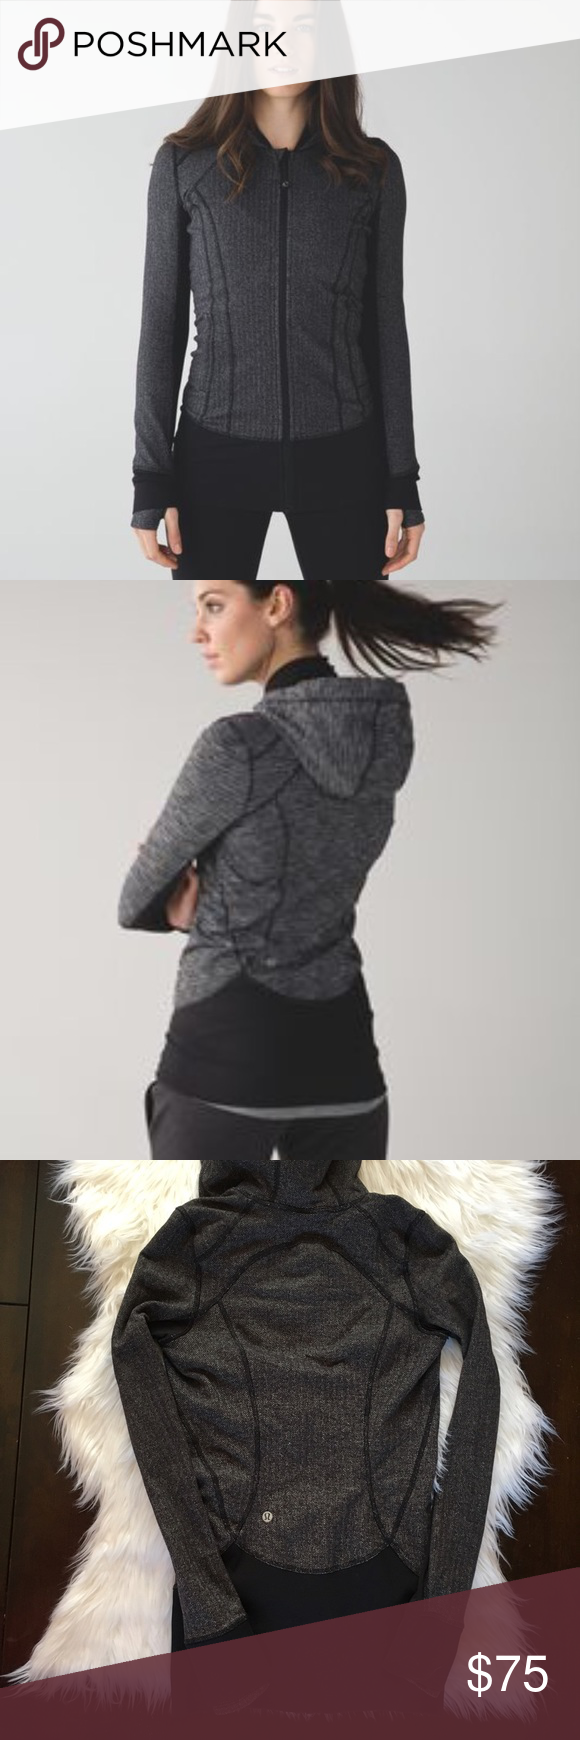 Lululemon Everyday Practice Jacket Heathered black herribone jacket. Excellent condition, no flaws. No pilling, pull tag still attached. Worn very very little. I just wear a size 4 in lulu and this was too tight  😩 lululemon athletica Tops Sweatshirts & Hoodies